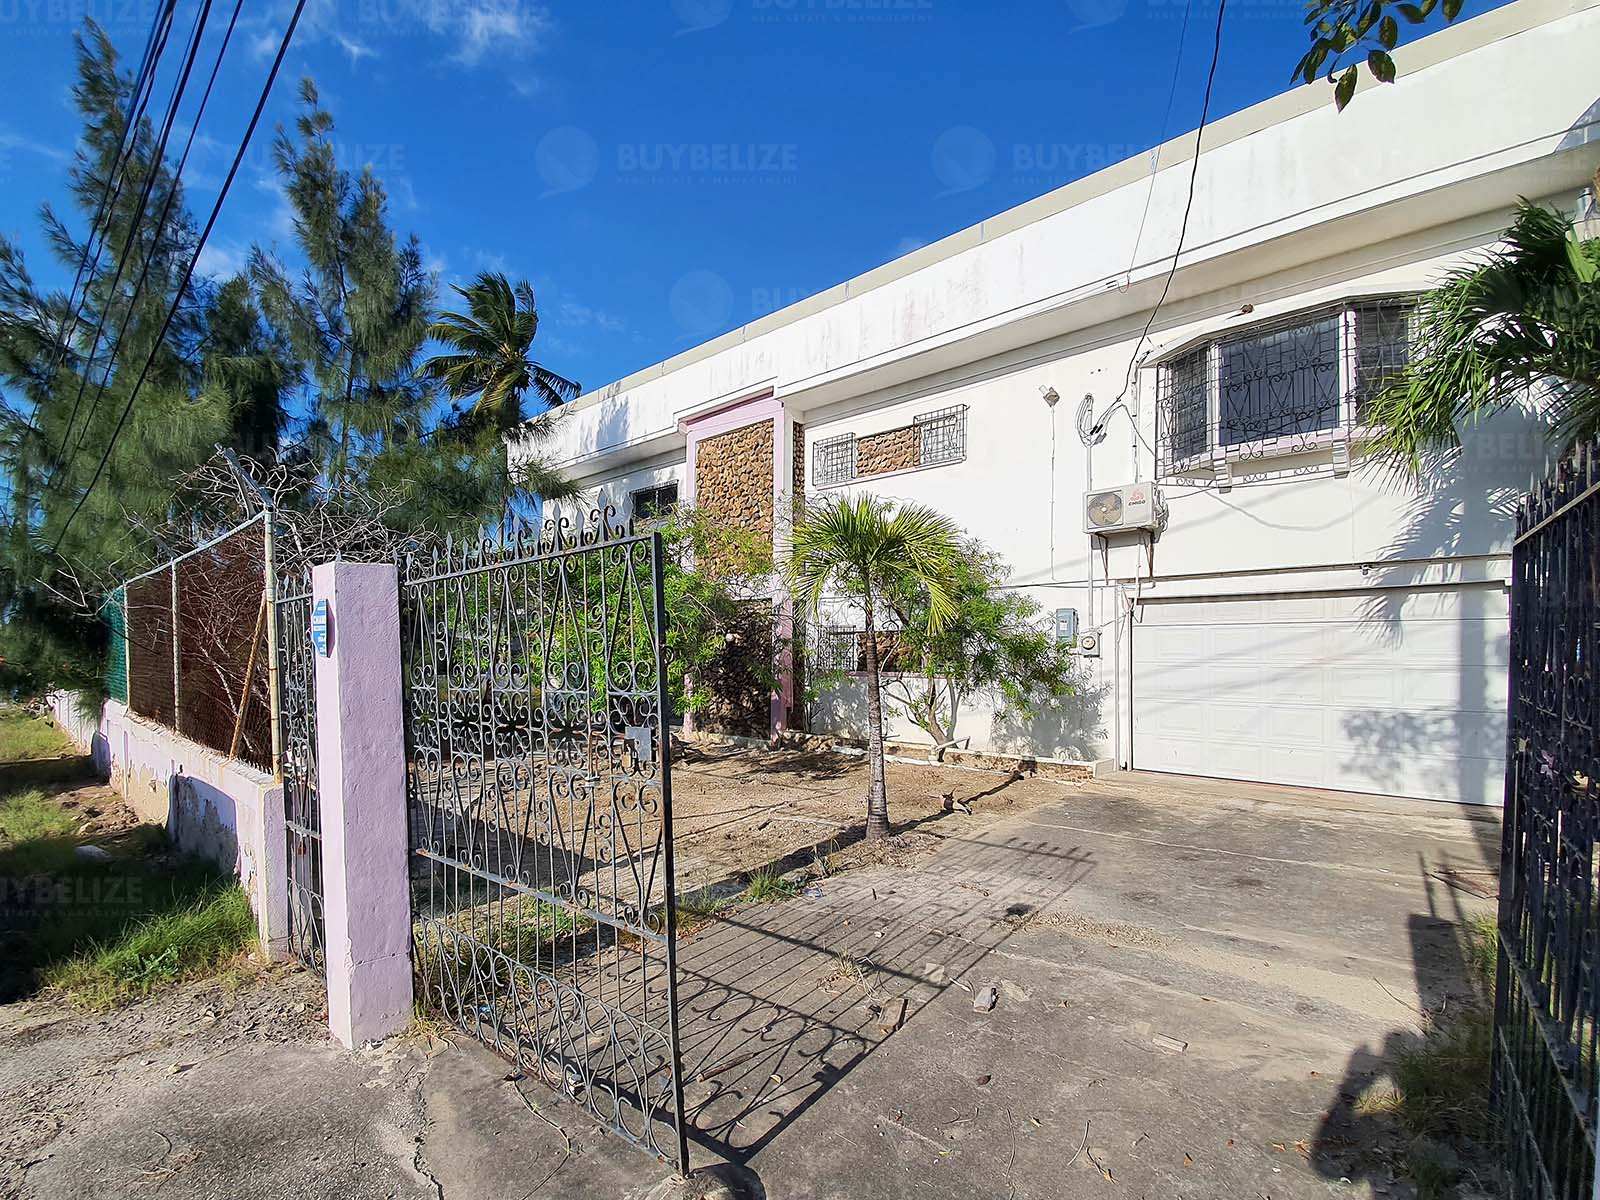 House for Rent in Belize City